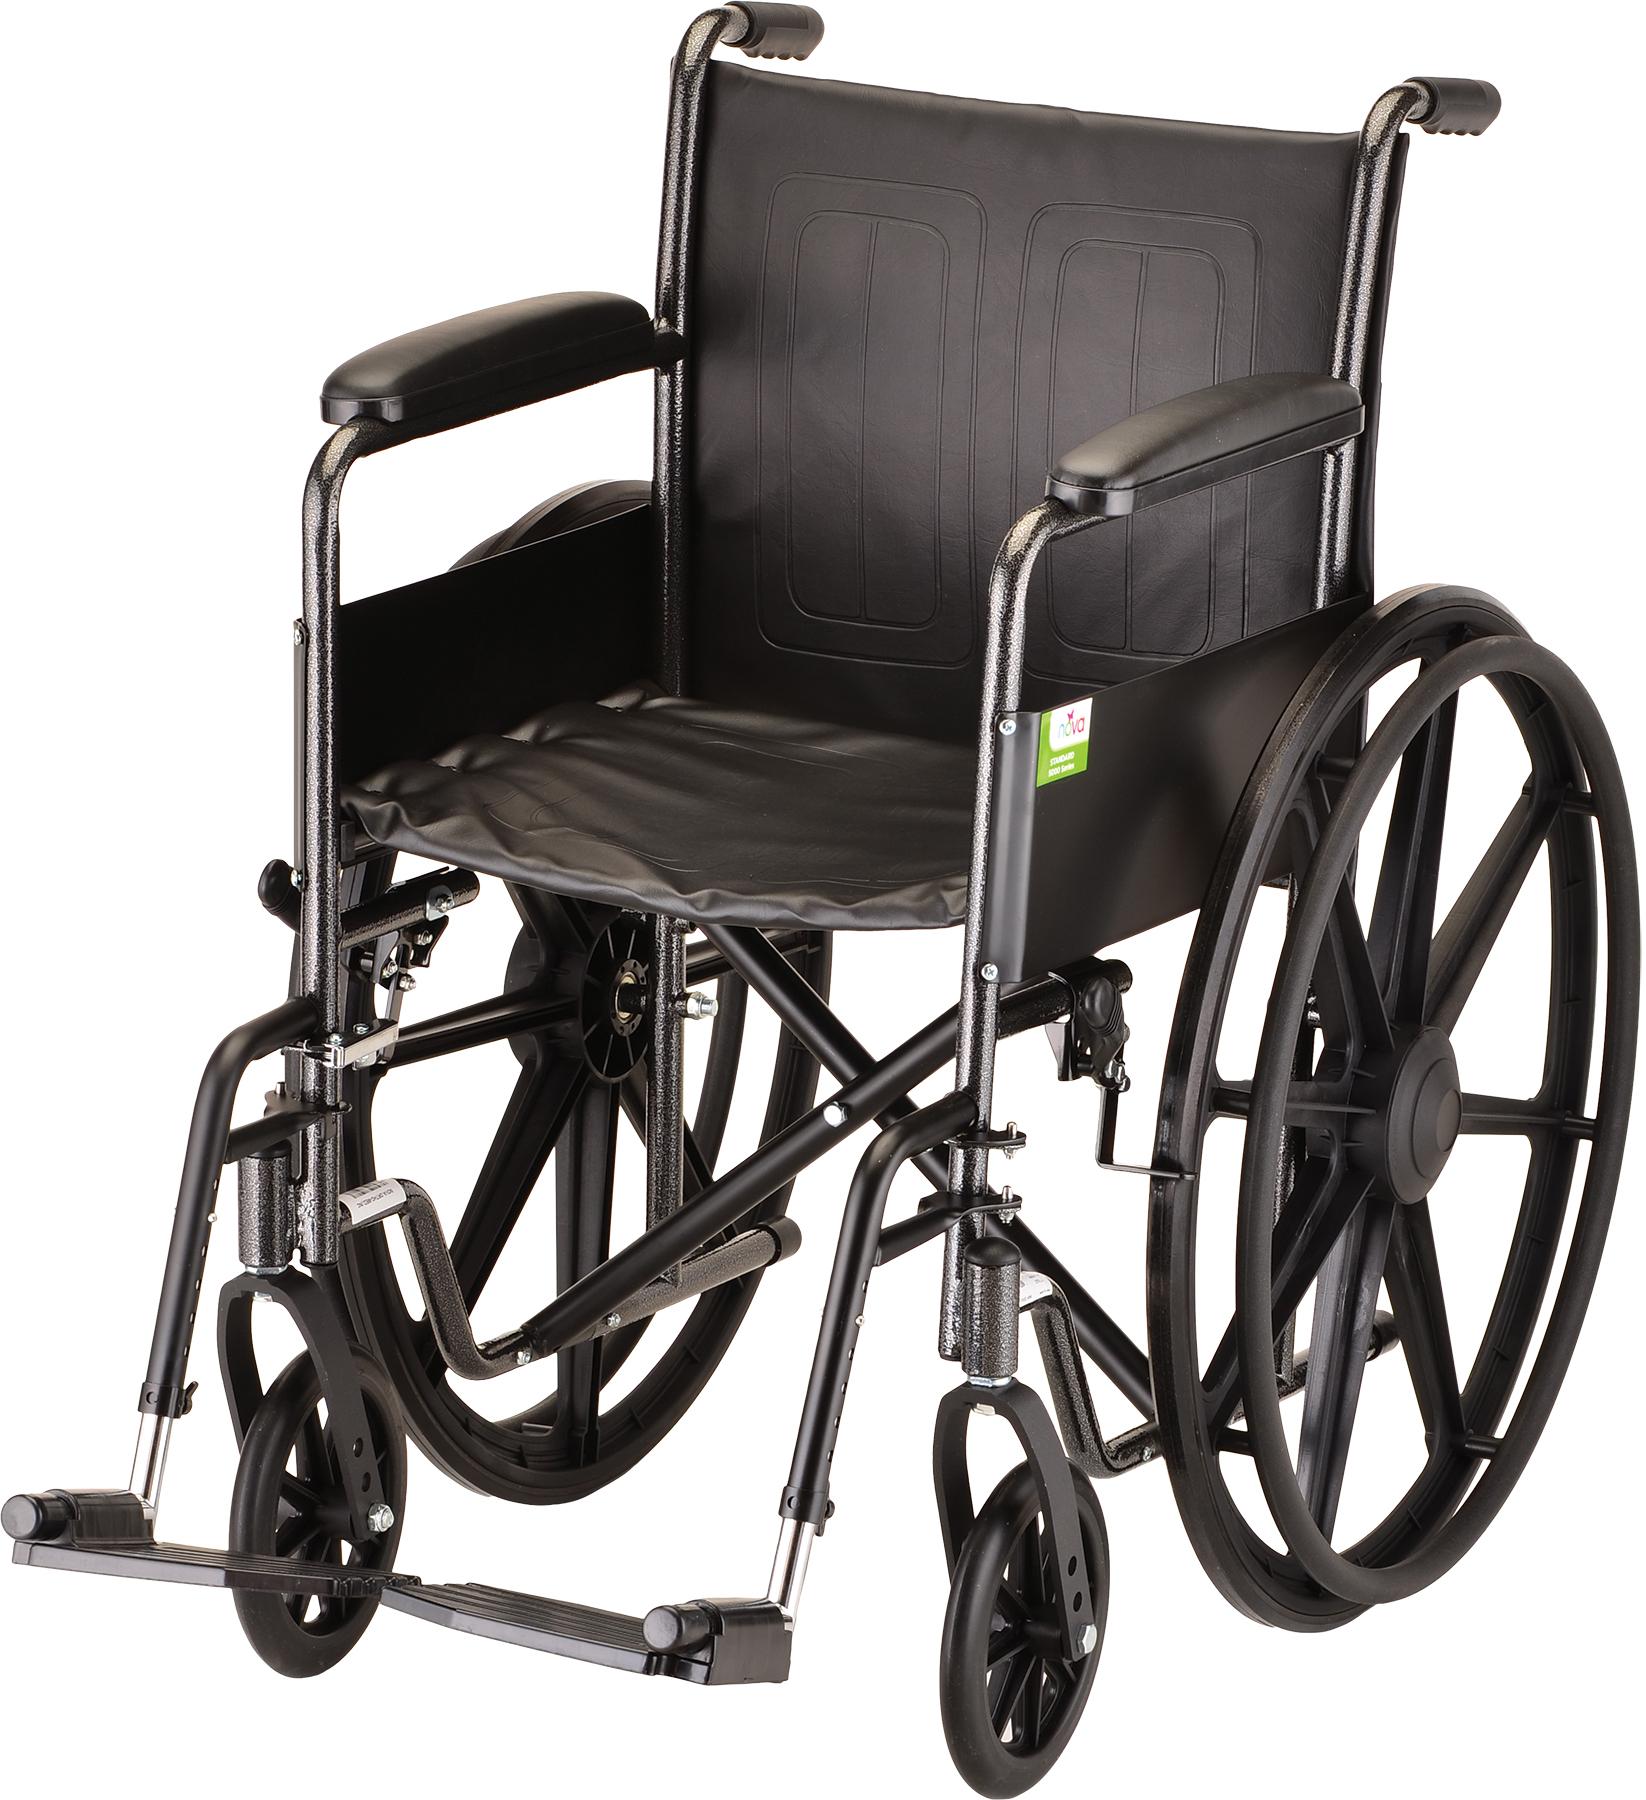 18 Inch Hammertone Wheelchair